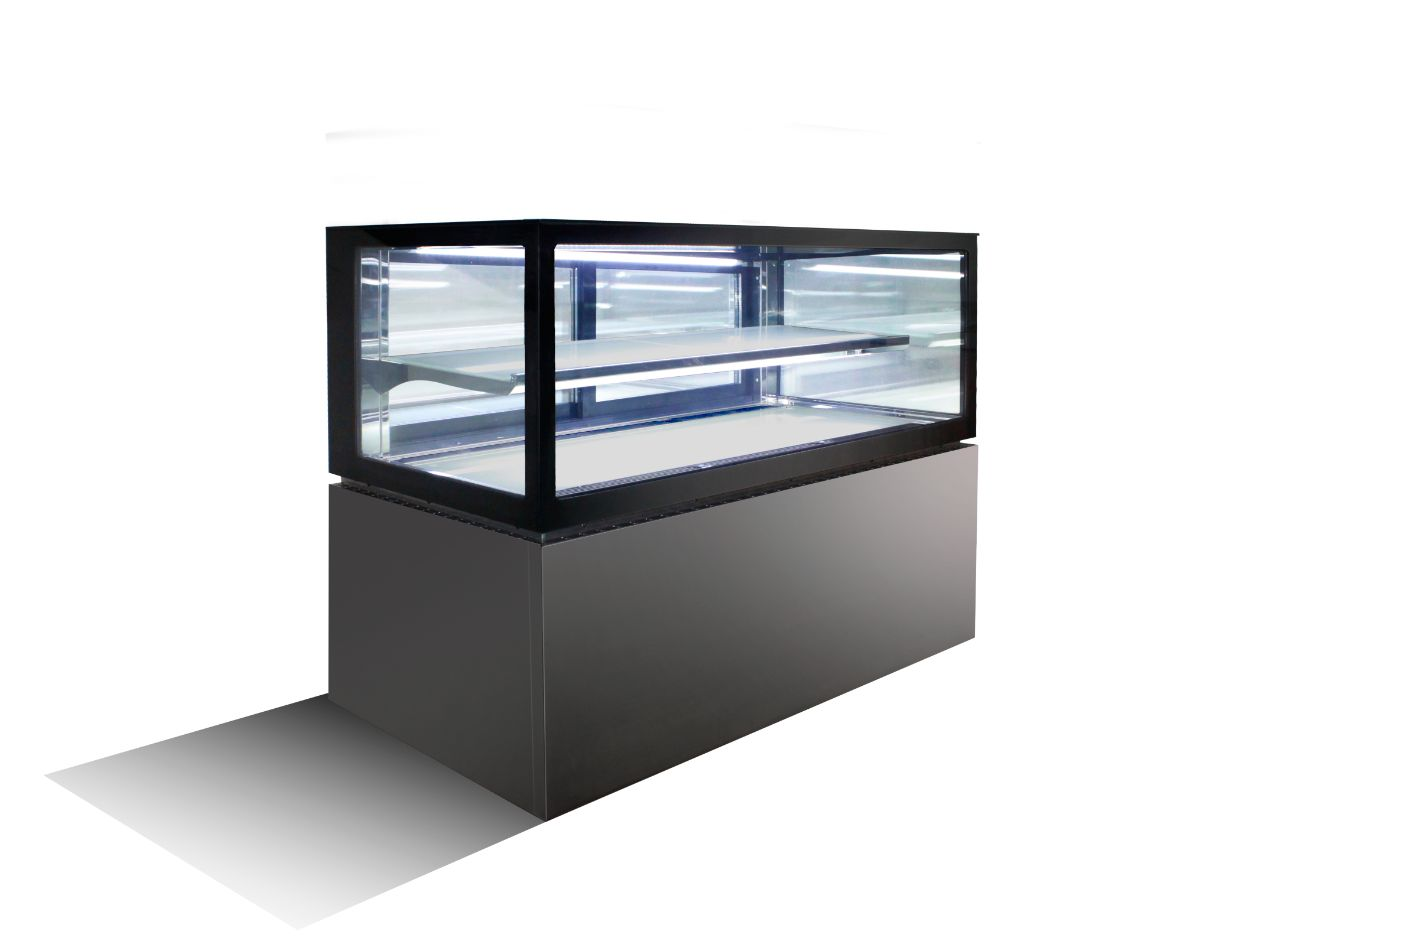 Anvil Aire NDSJ2730 Low Line Jewellery Display 2 Tier 900mm